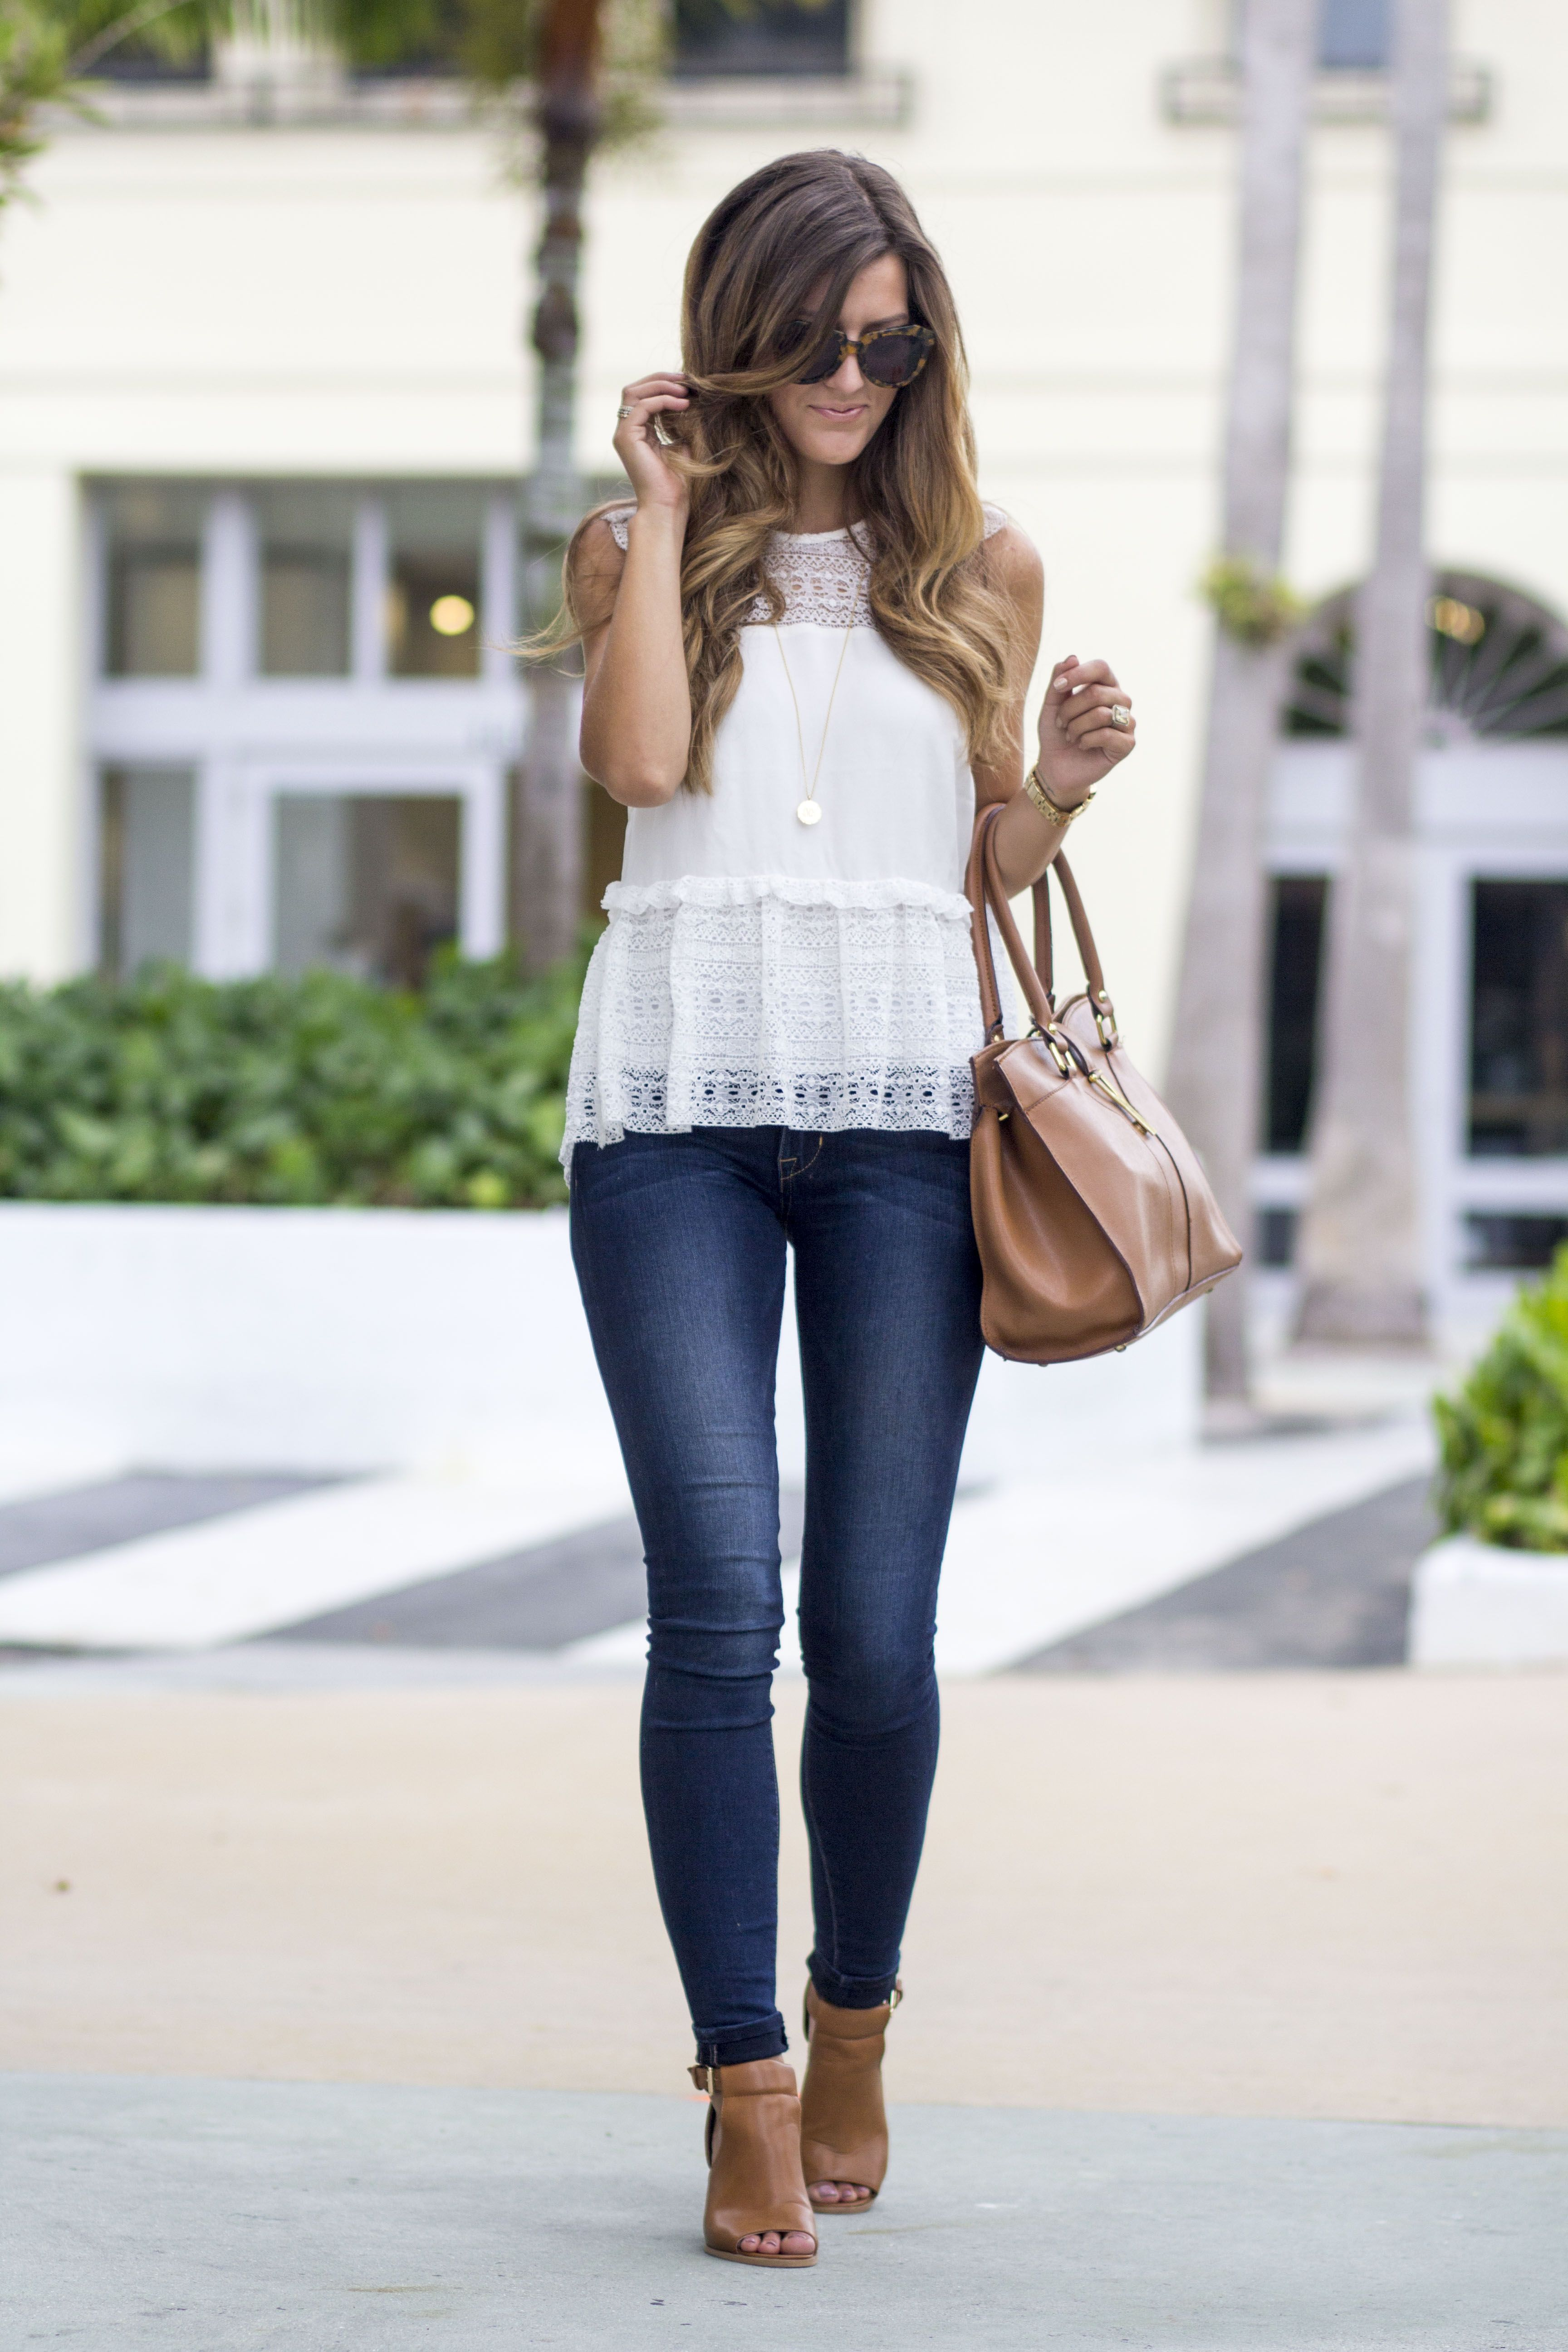 Too tight jeans, overdone hair, gigantic designer bag, and zero originality 9b10a528dd5